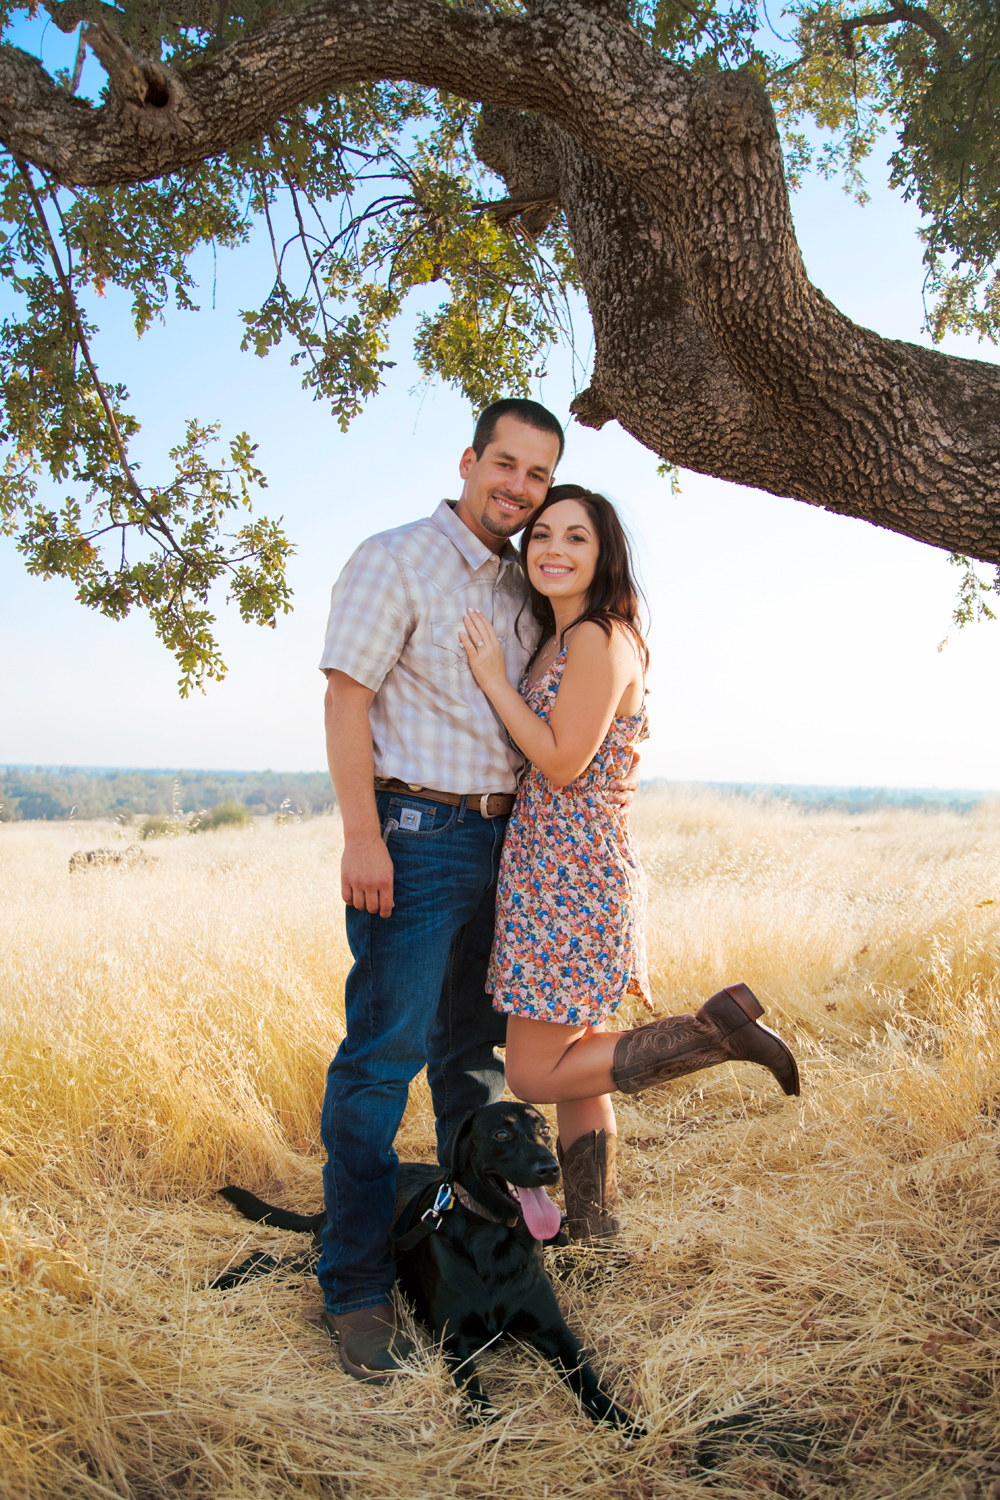 Engagement-with-Dog-photography-Upper-Bidwel-Park-Chico-13-2.jpg